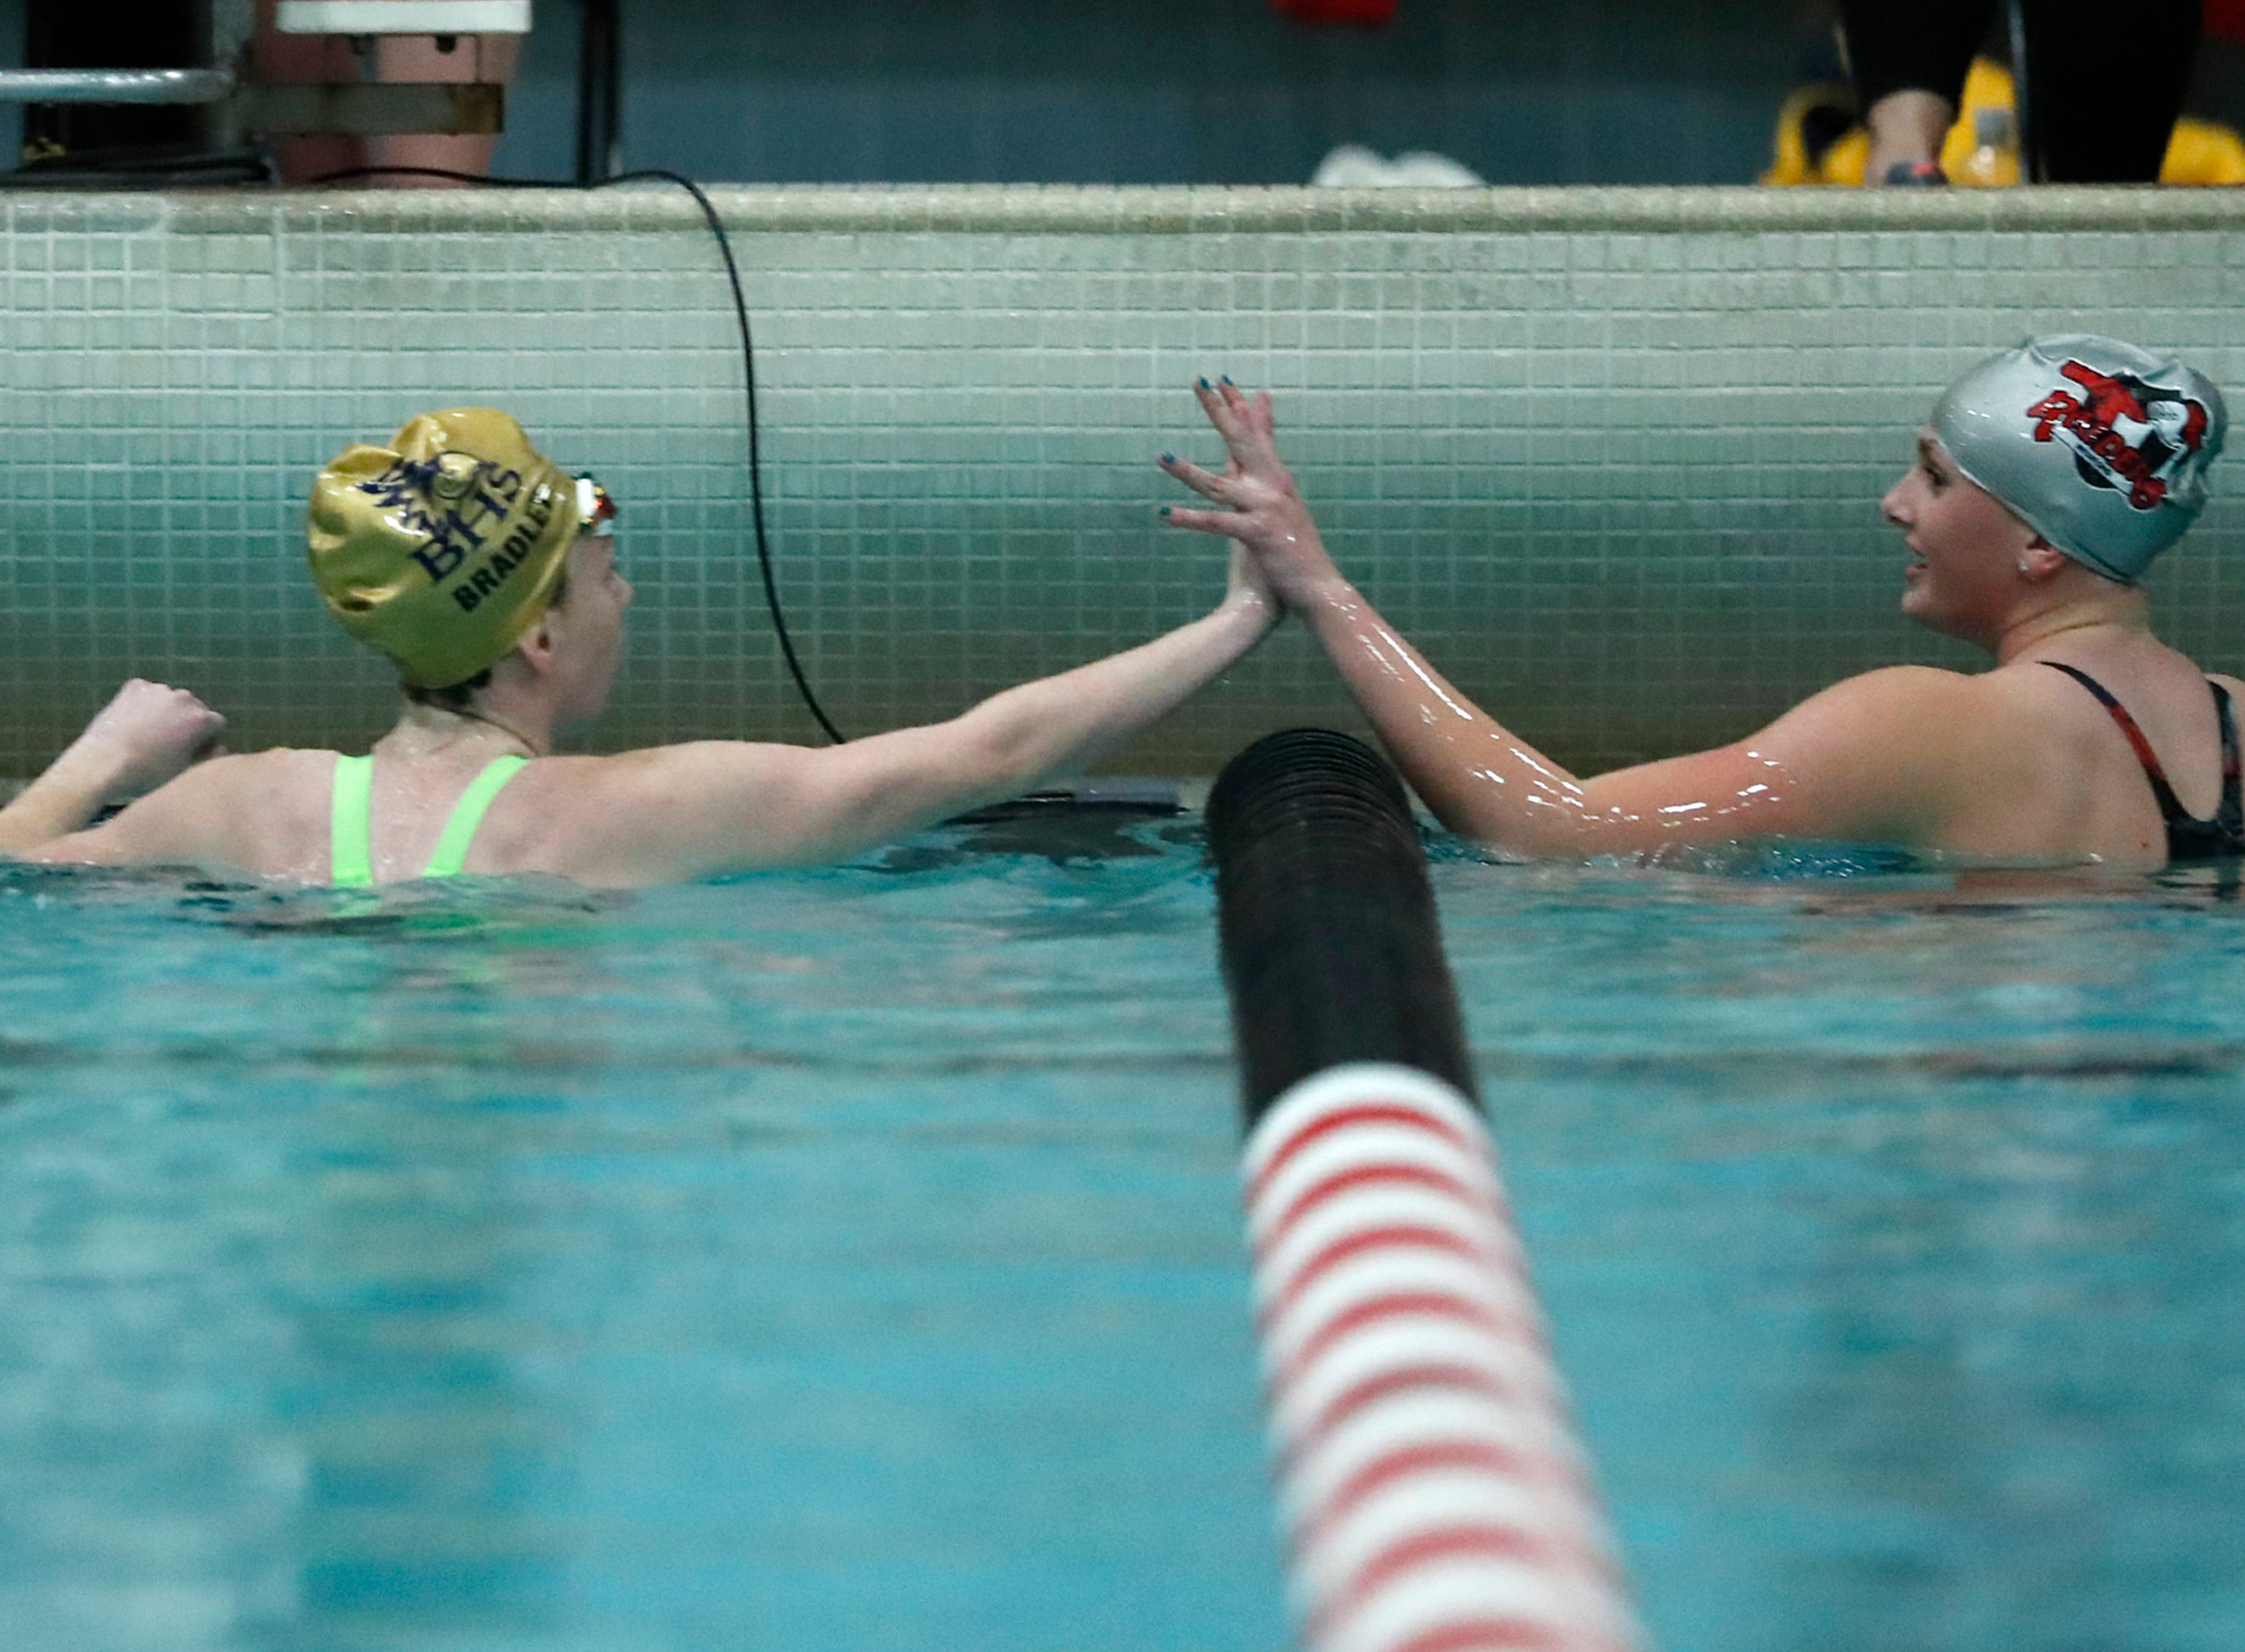 Baraboo's Taylor Bradley high fives Medford's Aubrey Buskerud after finishing the 200 yard individual medley during the WIAA Division 2 State Swimming and Diving meet Friday, Nov. 9, 2018, at the UW Natatorium in Madison, Wis.Danny Damiani/USA TODAY NETWORK-Wisconsin